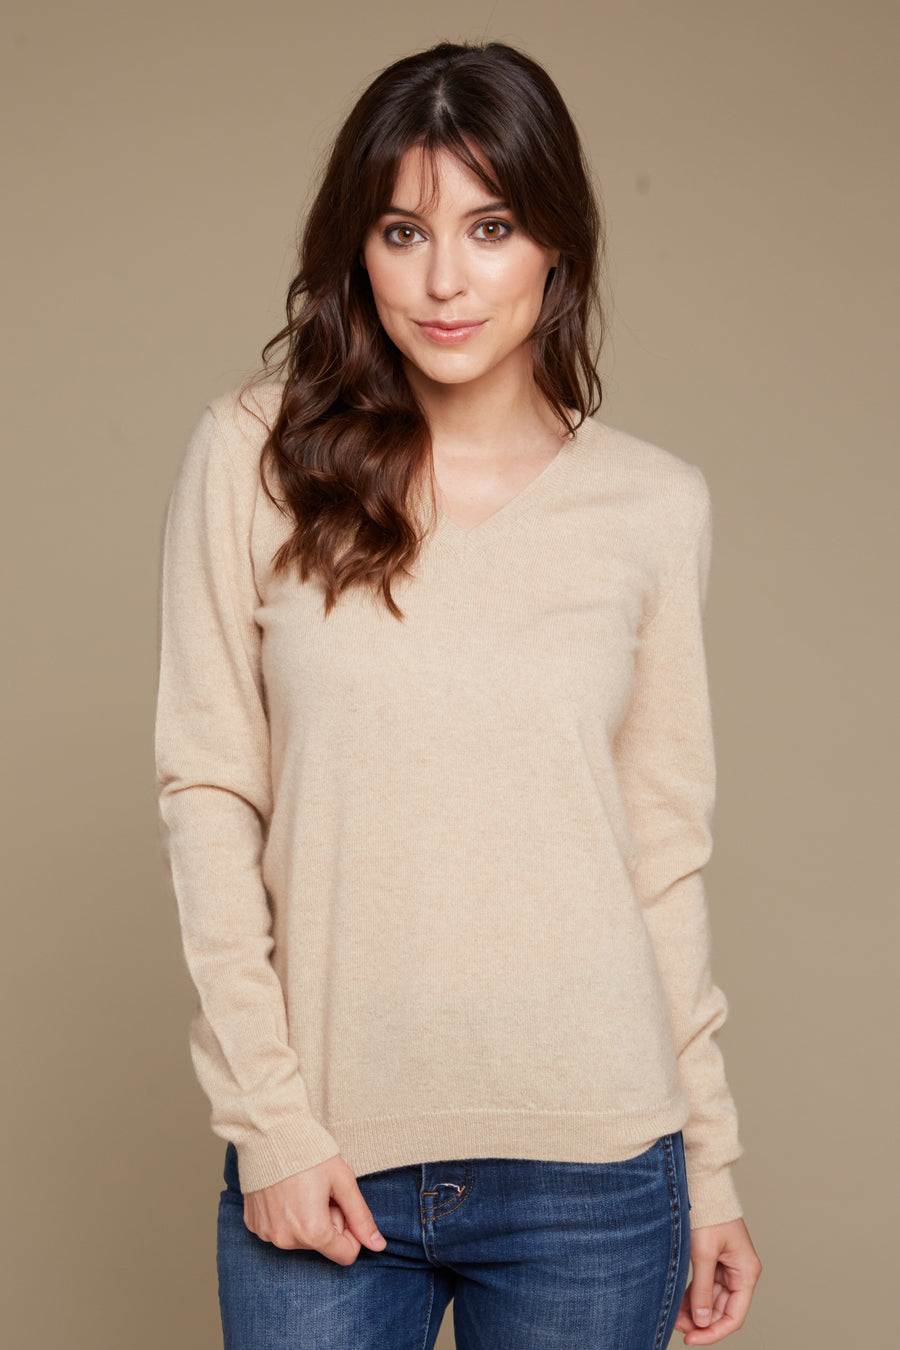 pine cashmere vienna women's 100% pure organic cashmere classic v-neck sweater in tan